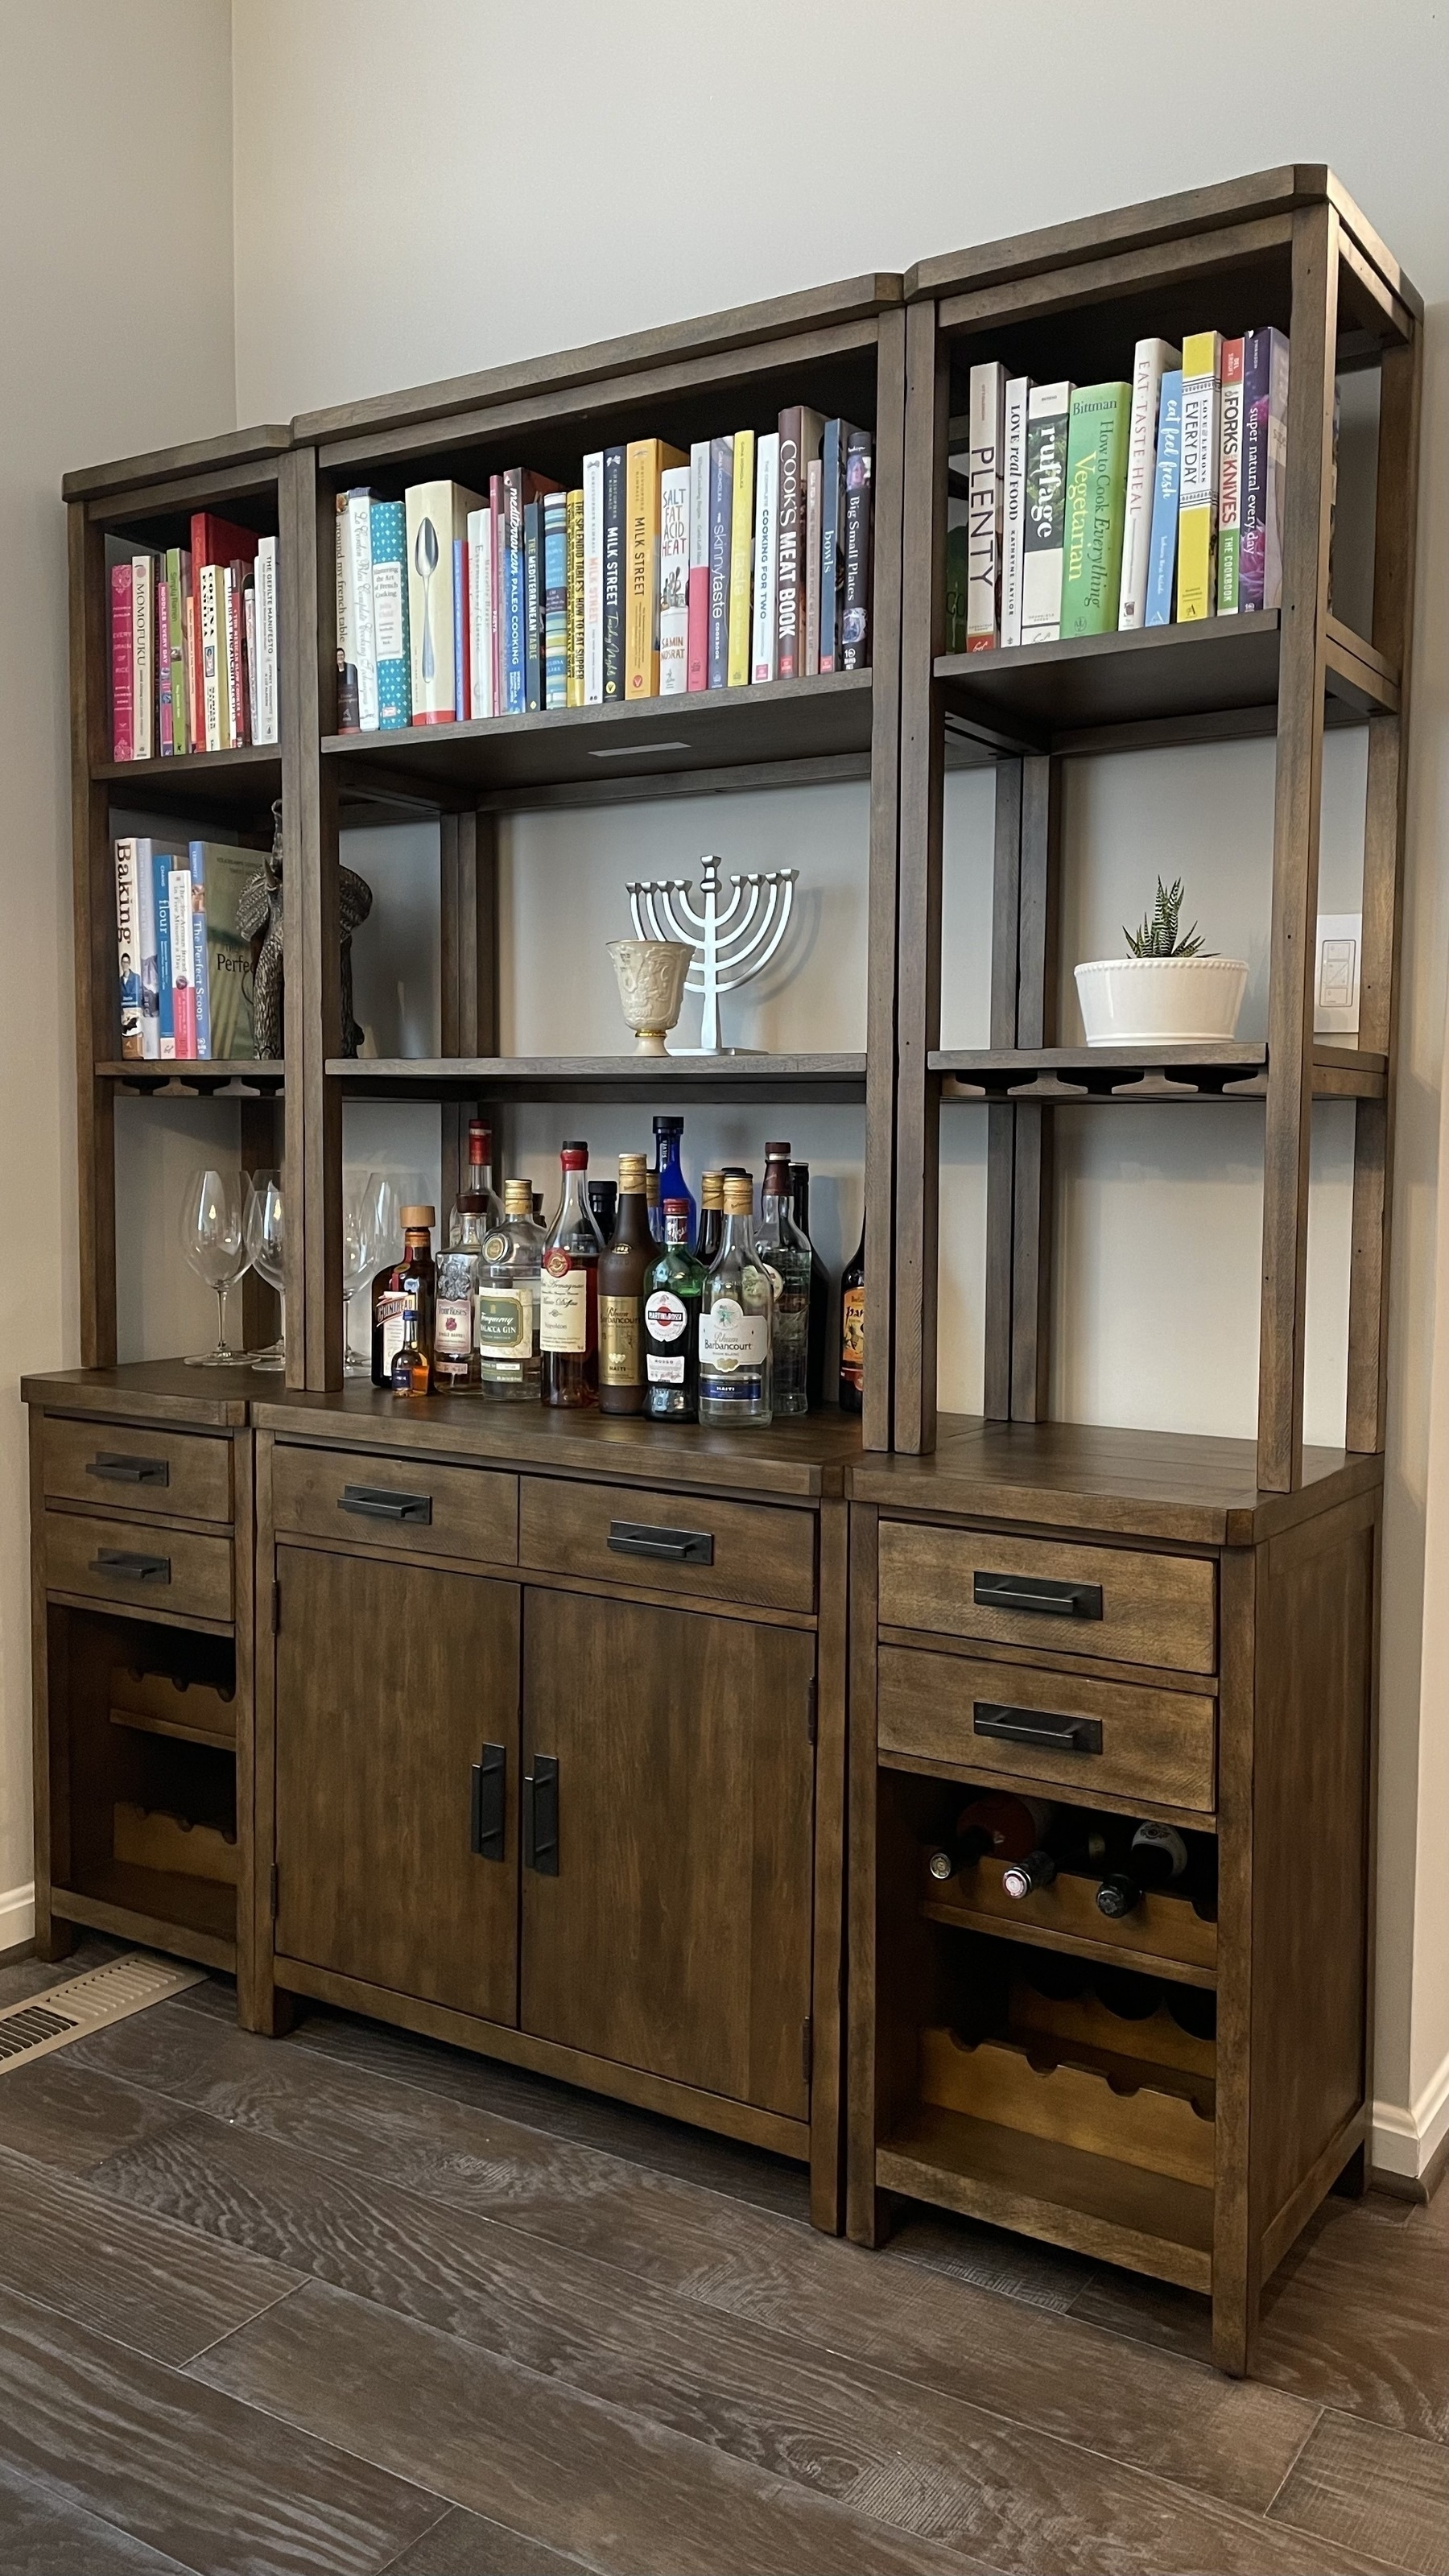 Pottery Barn Matteo Bar set with books along the top row.